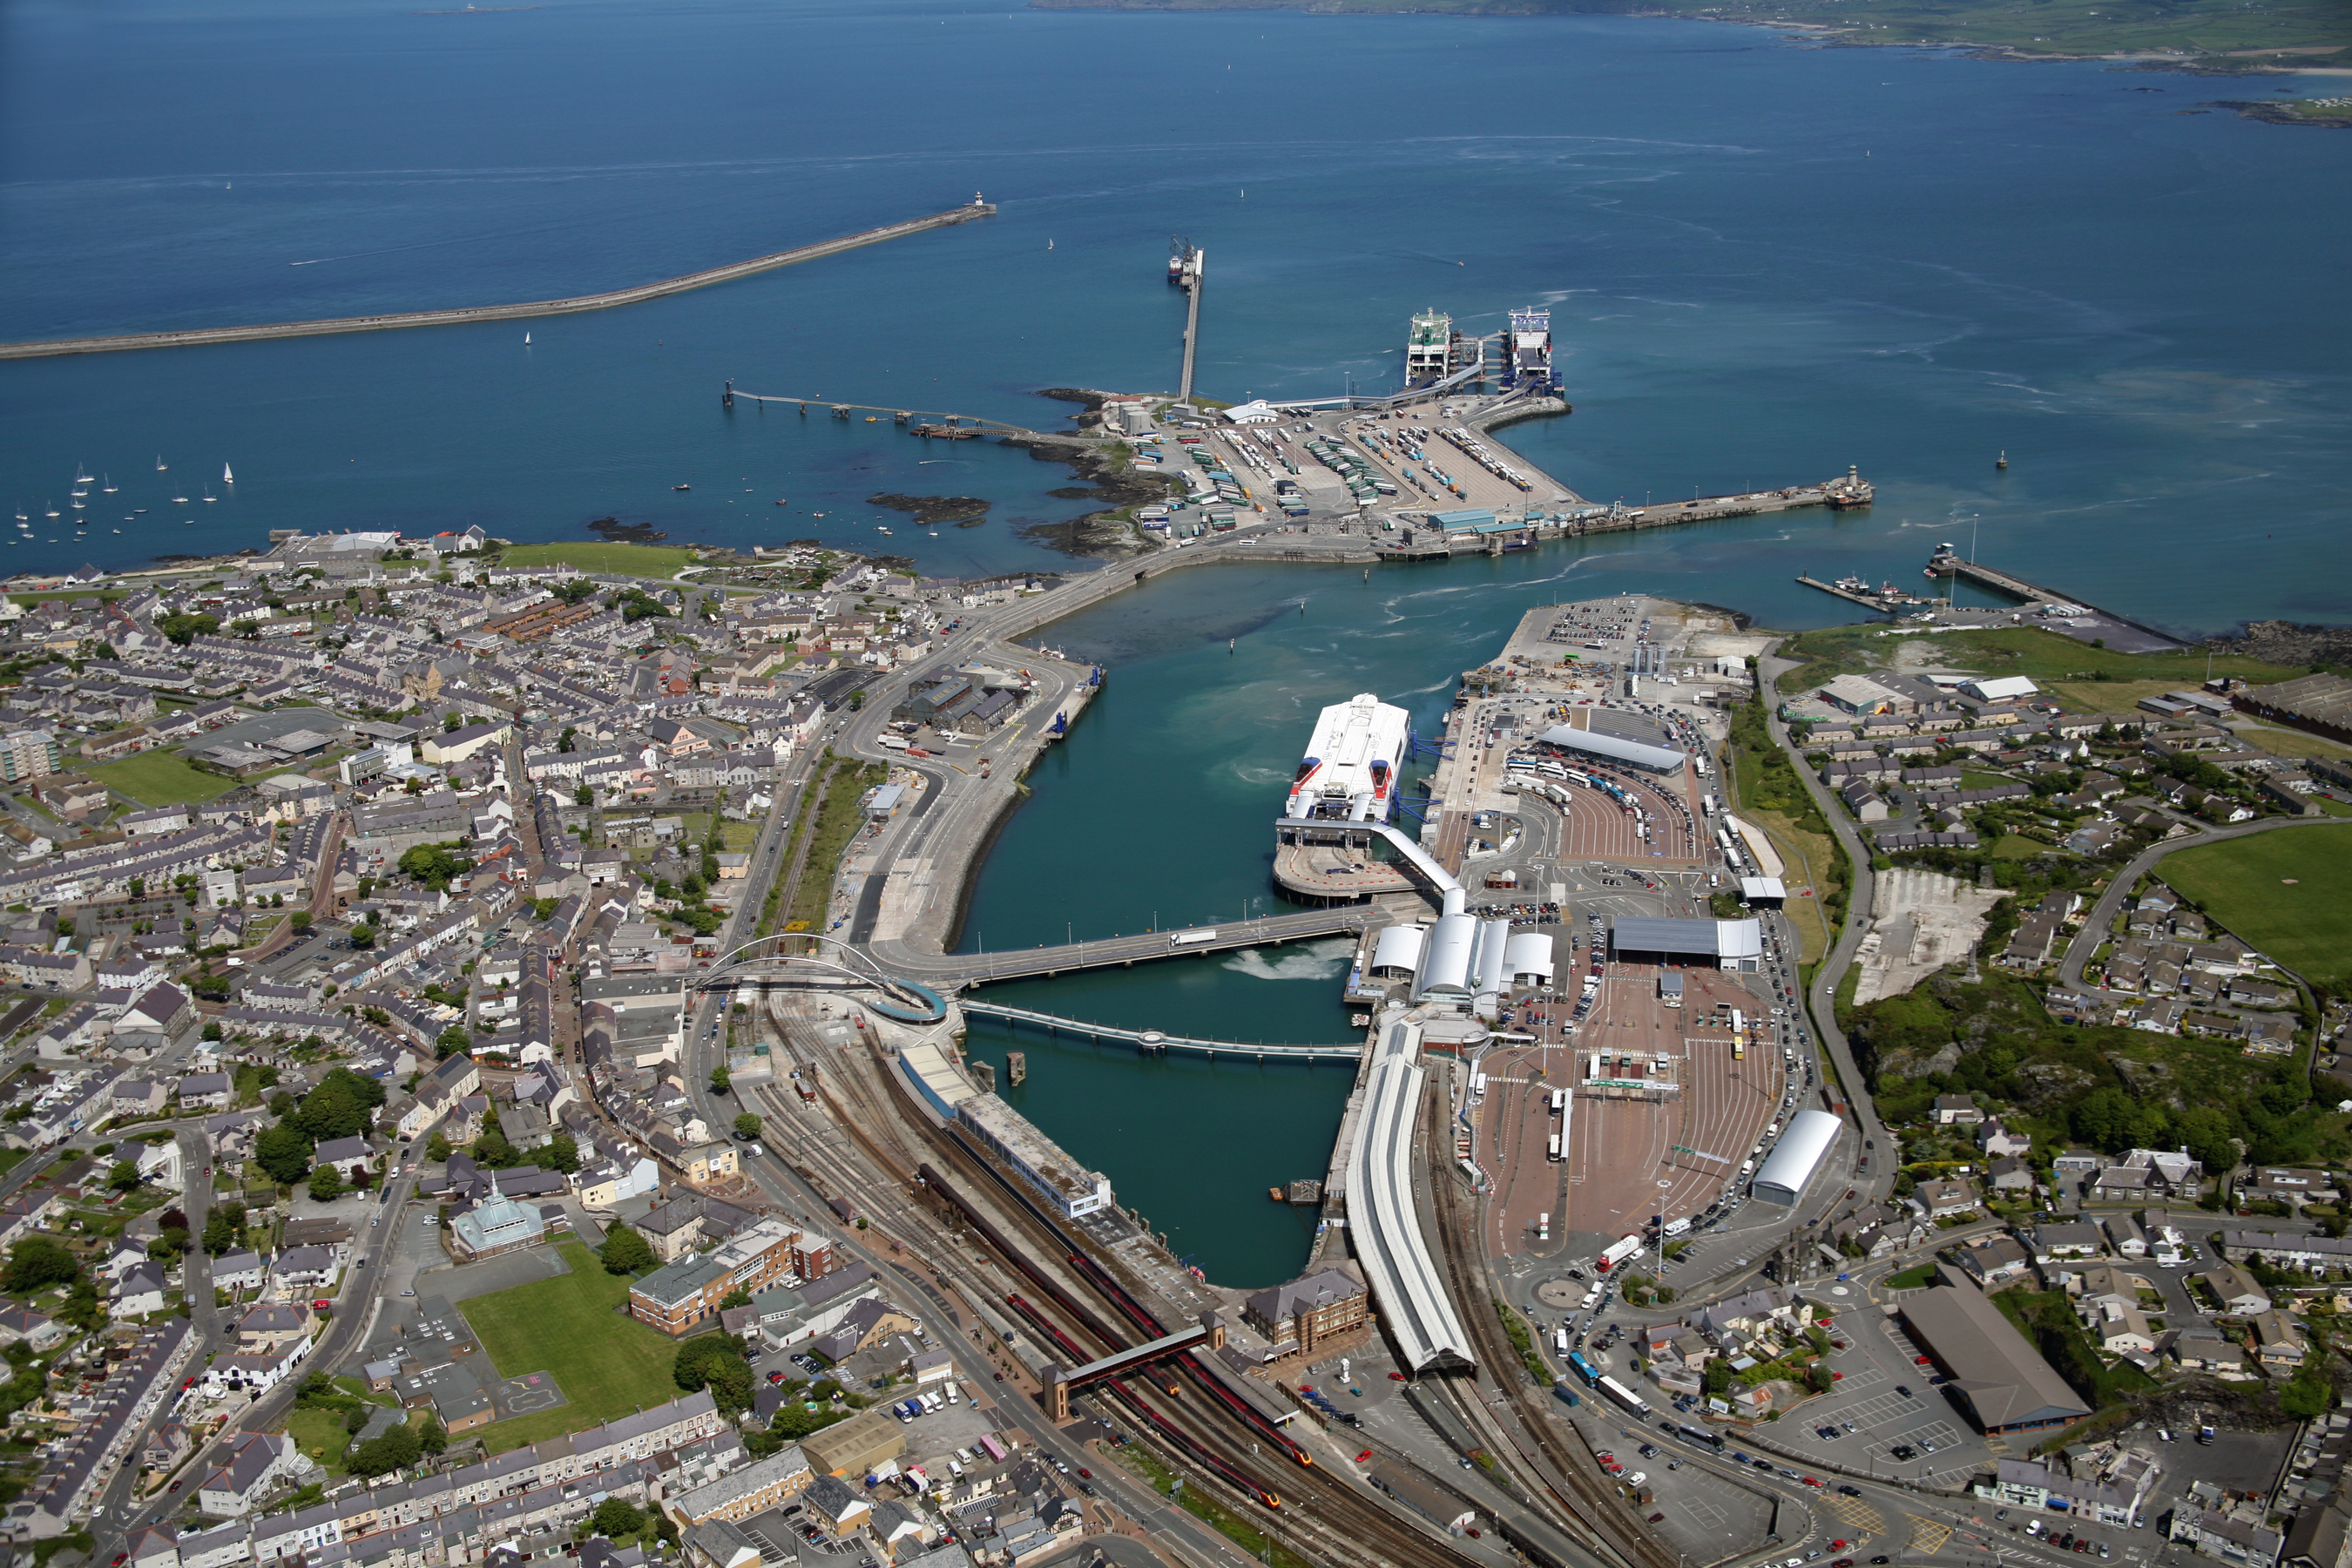 Aerial view of Holyhead Port